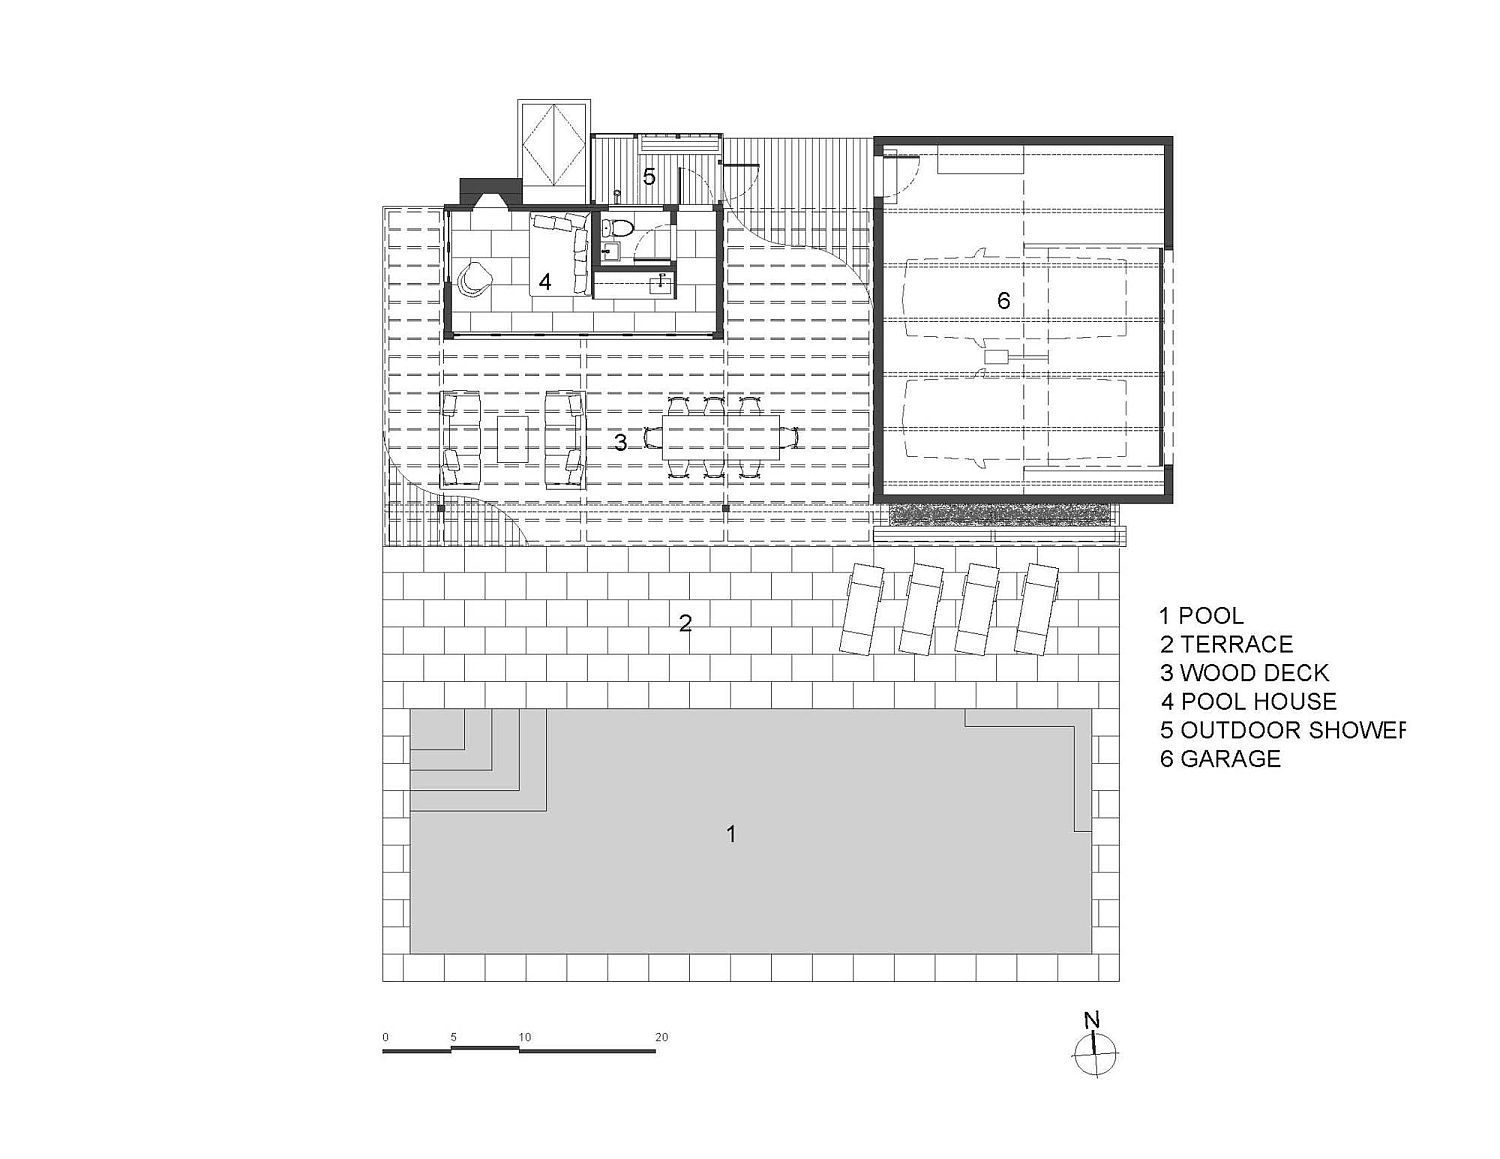 Overall plan and design of the pool house